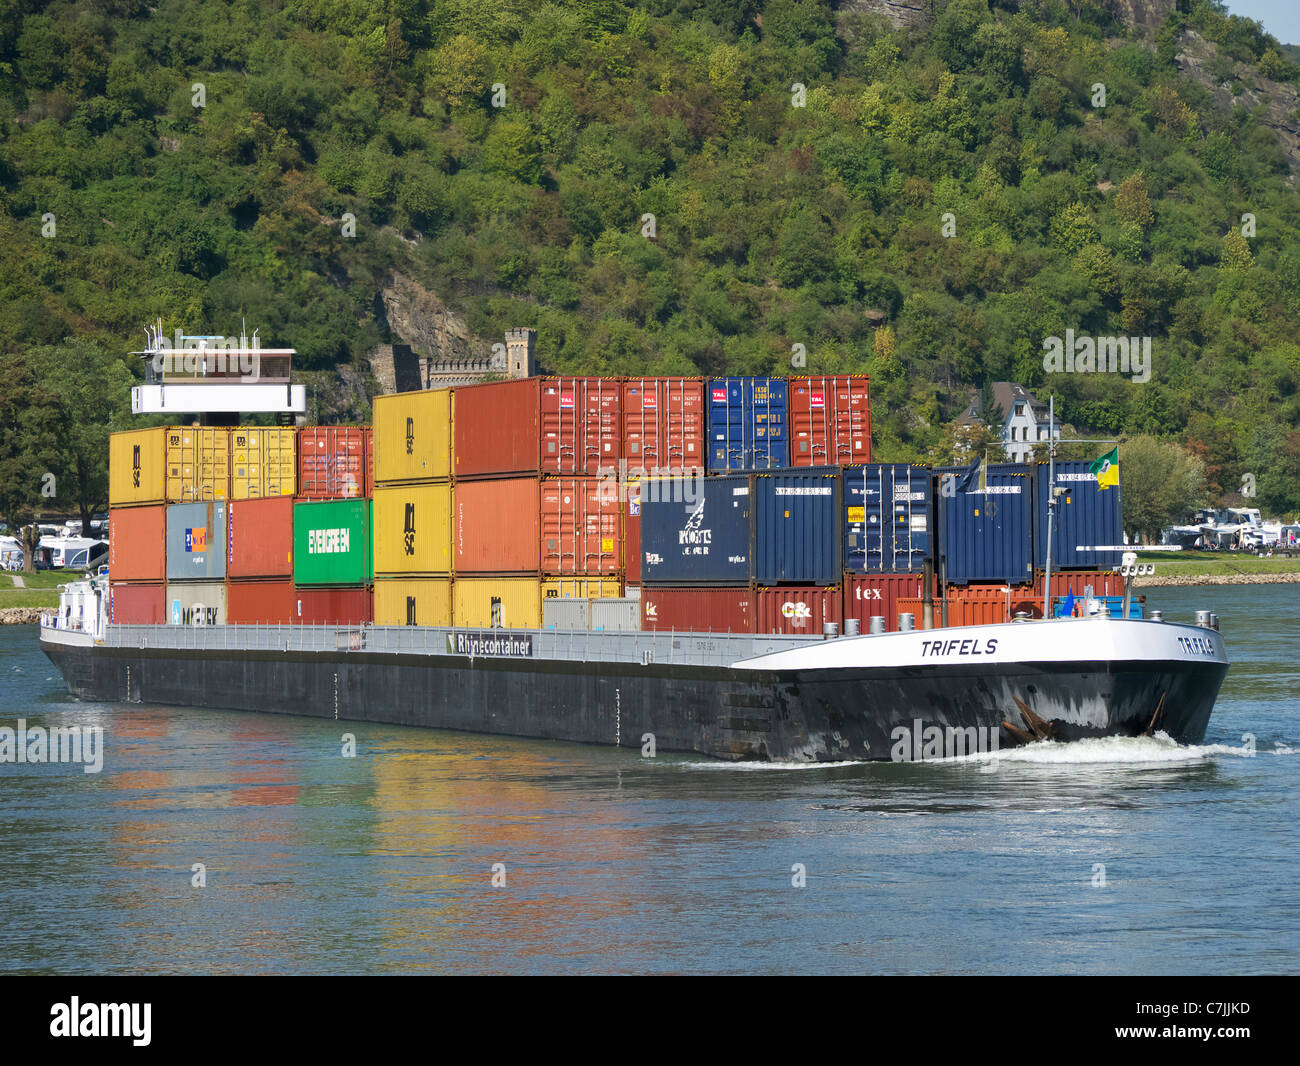 Large barge carrying container freight sailing up the River Rhine in Germany - Stock Image